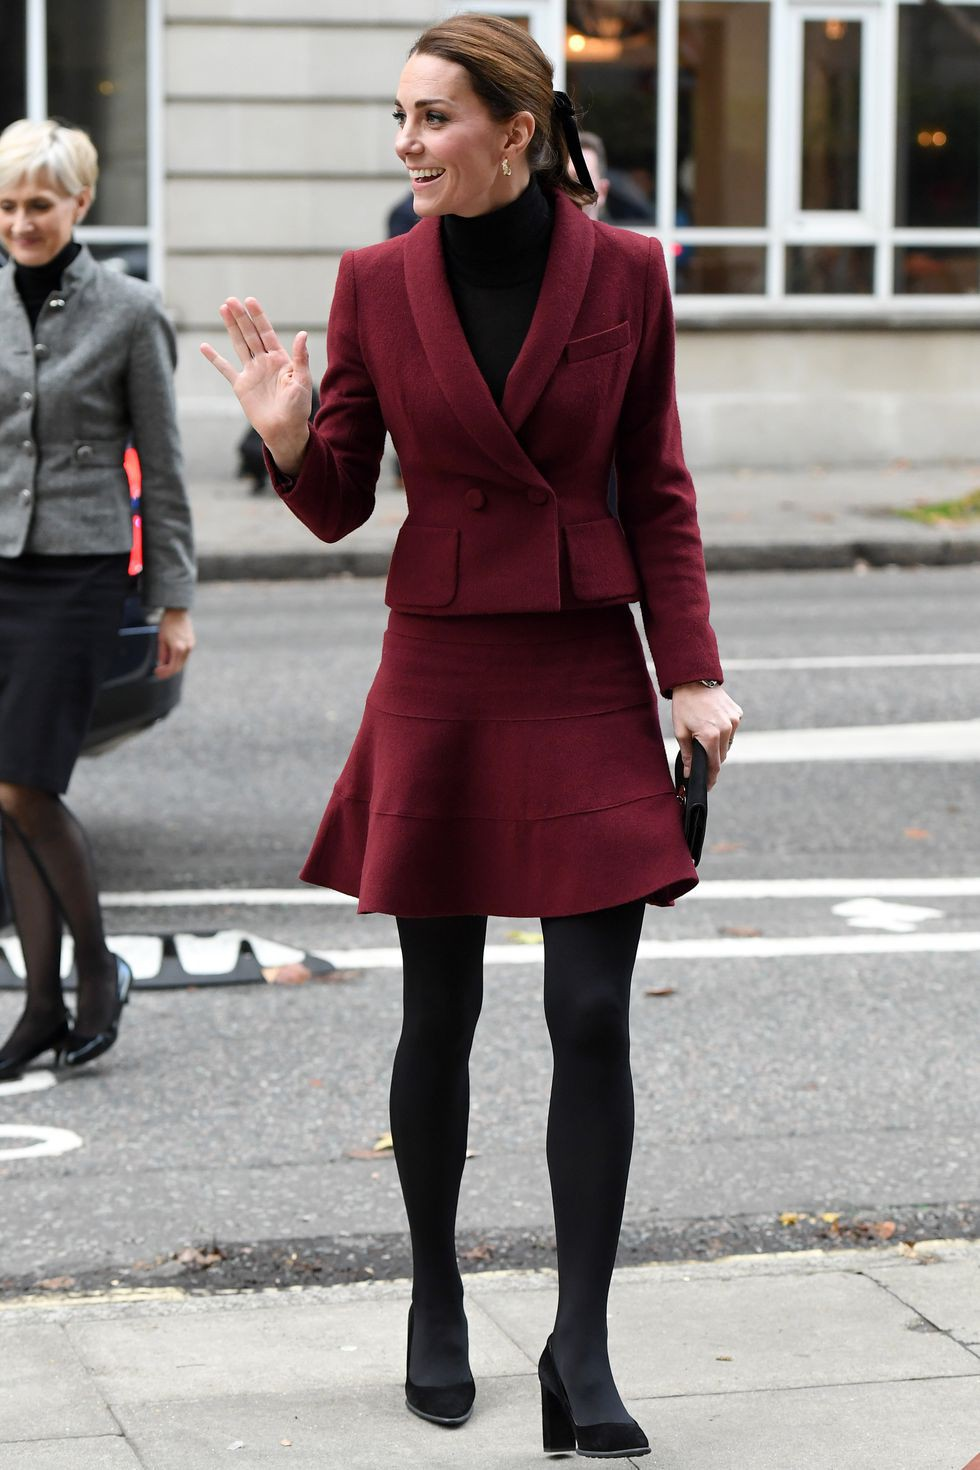 catherine-duchess-of-cambridge-visits-a-ucl-developmental-news-photo-1064052692-1544098439